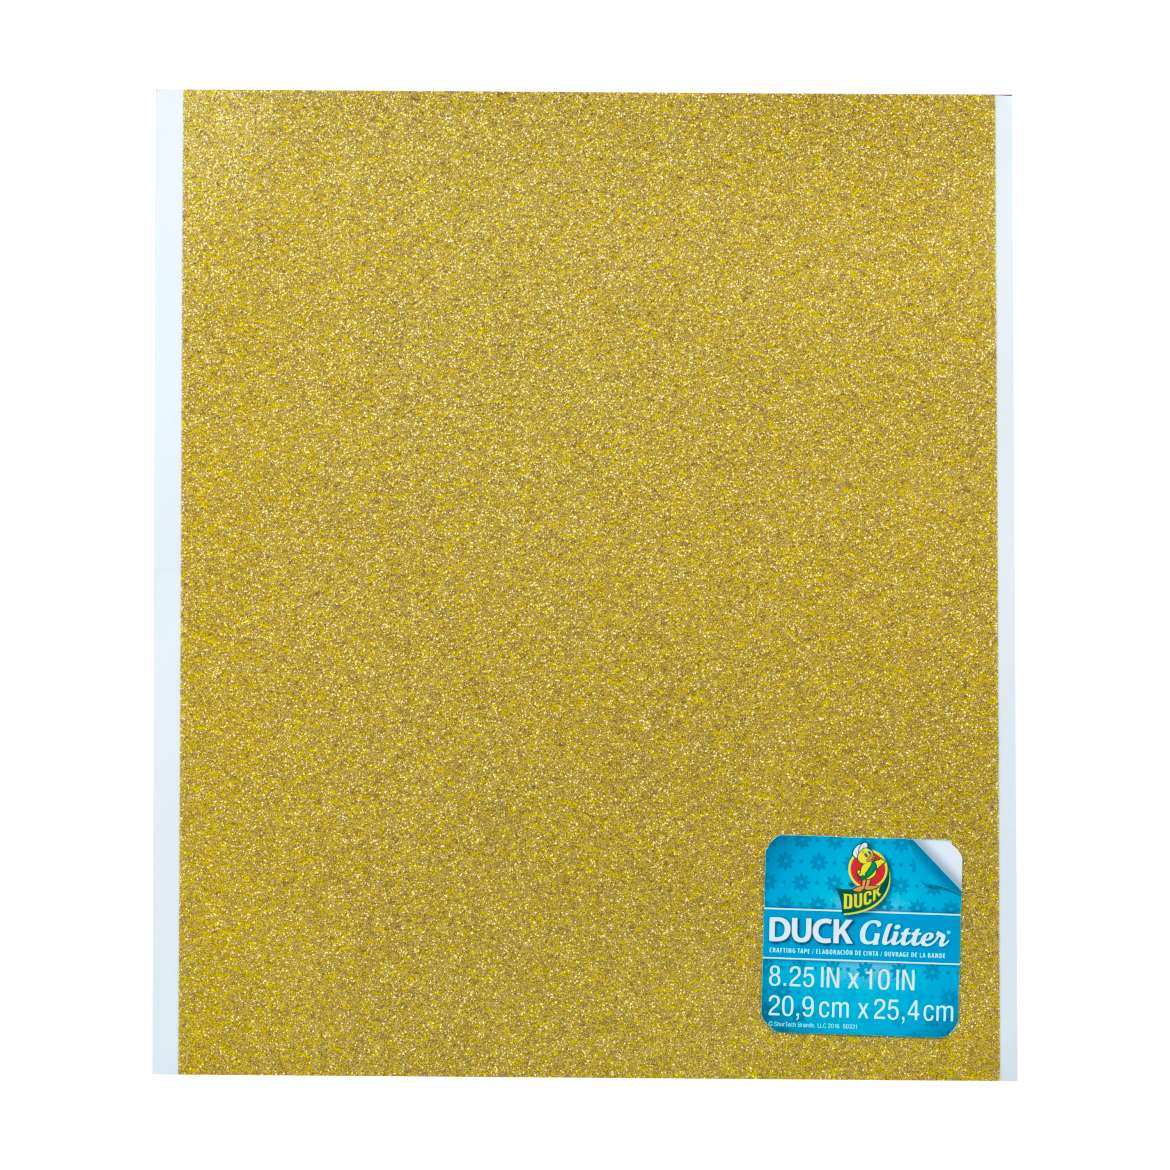 Duck Glitter® Sheets - Gold, 8.25 in x 10 in Image